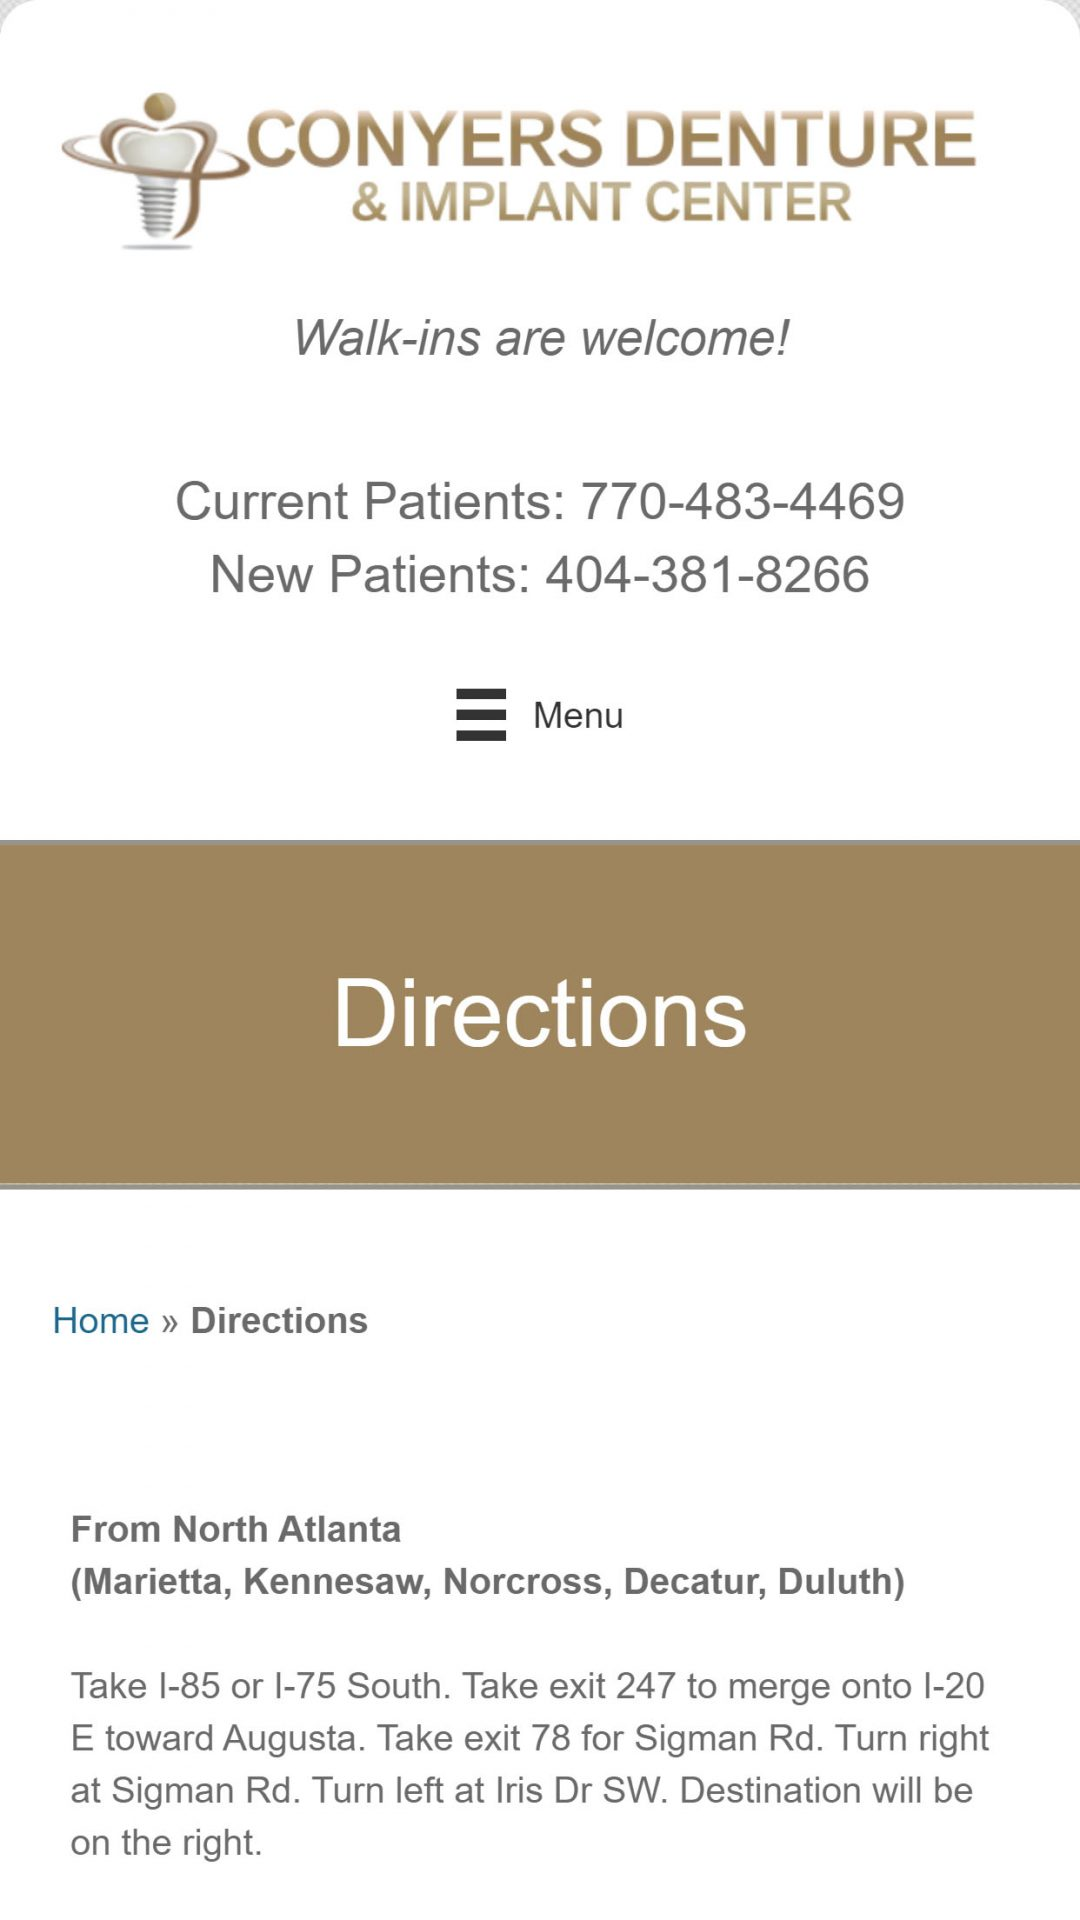 Conyers Denture & Implant Center Mobile Web Design